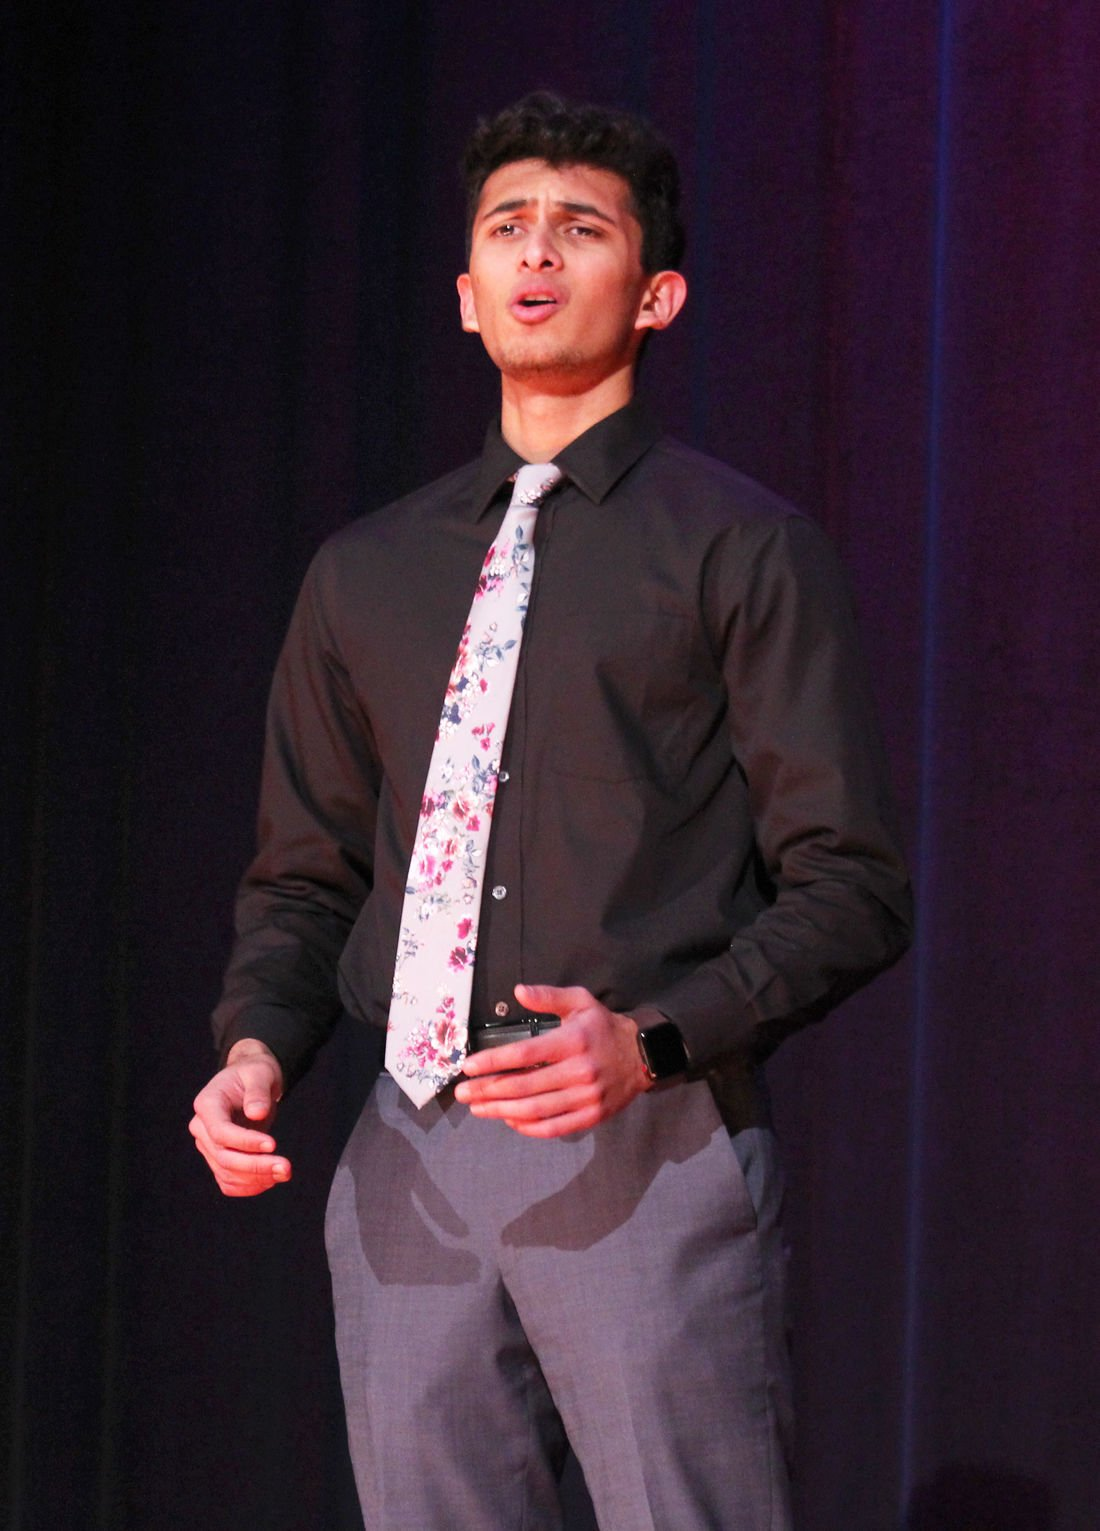 Oam Patel wins competition